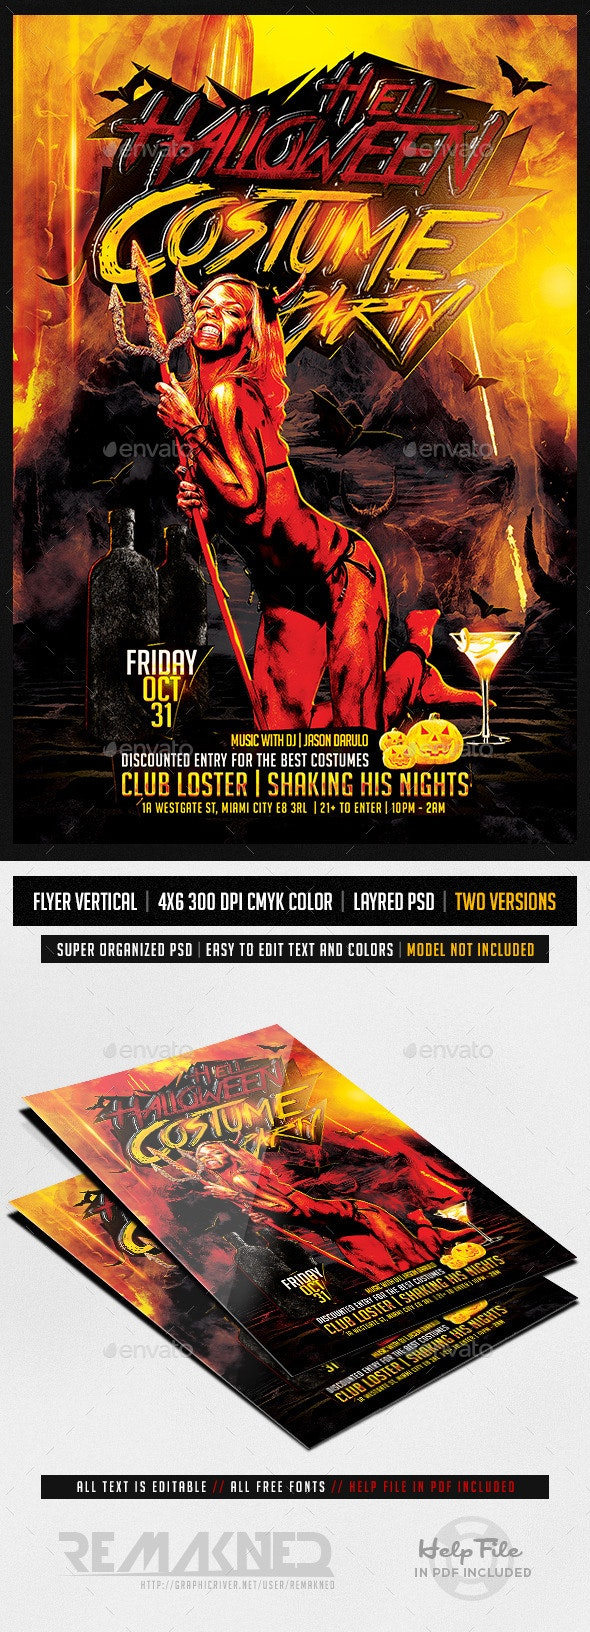 Hell Halloween Costume Party | Flyer Template PSD - Events Flyers